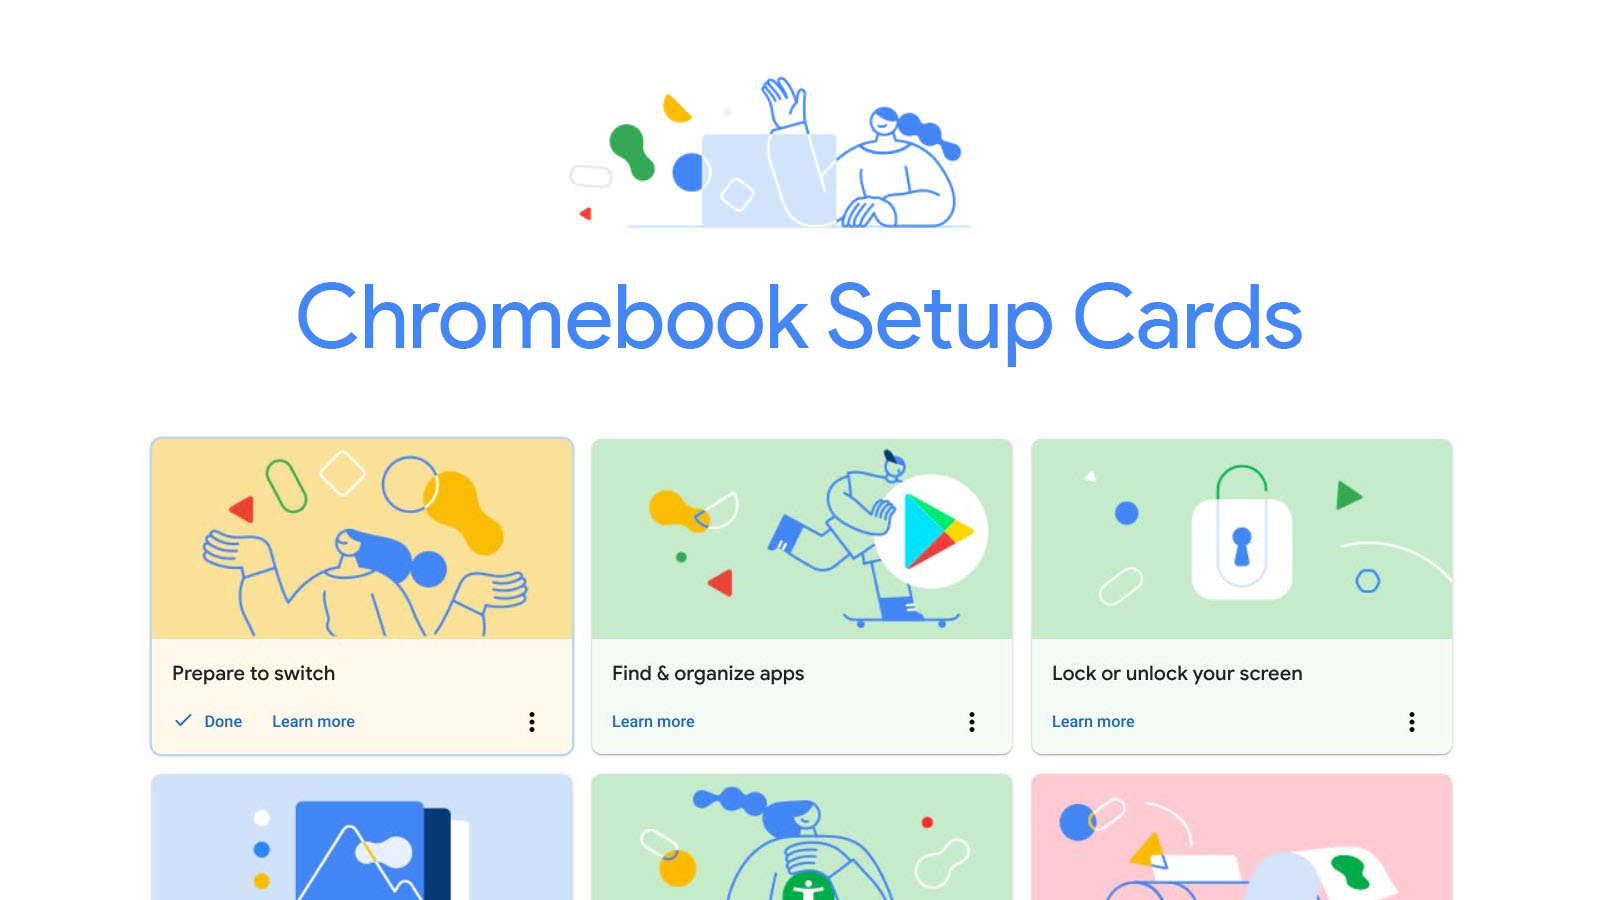 First-time setup checklist cards begin appearing in the Chromebook Explore app